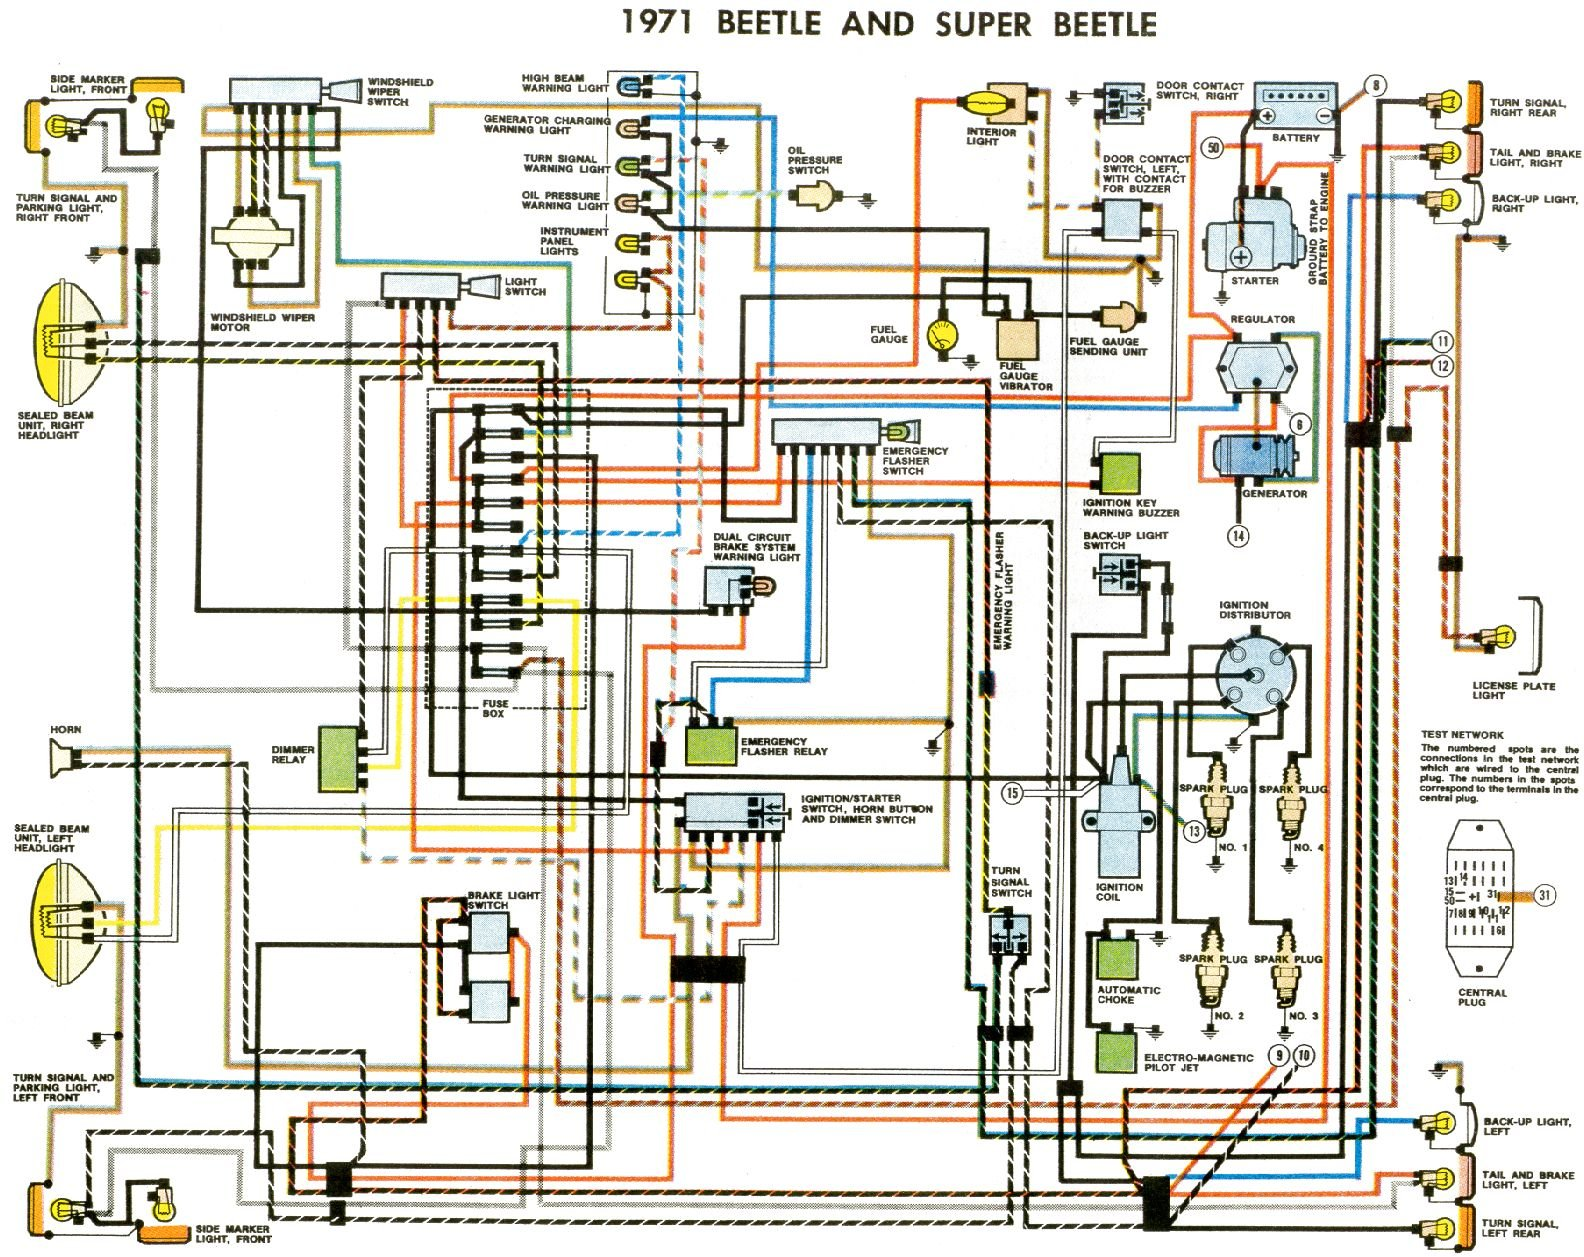 bug_71 1971 beetle wiring diagram (usa) thegoldenbug com 1969 beetle wiring diagram at sewacar.co